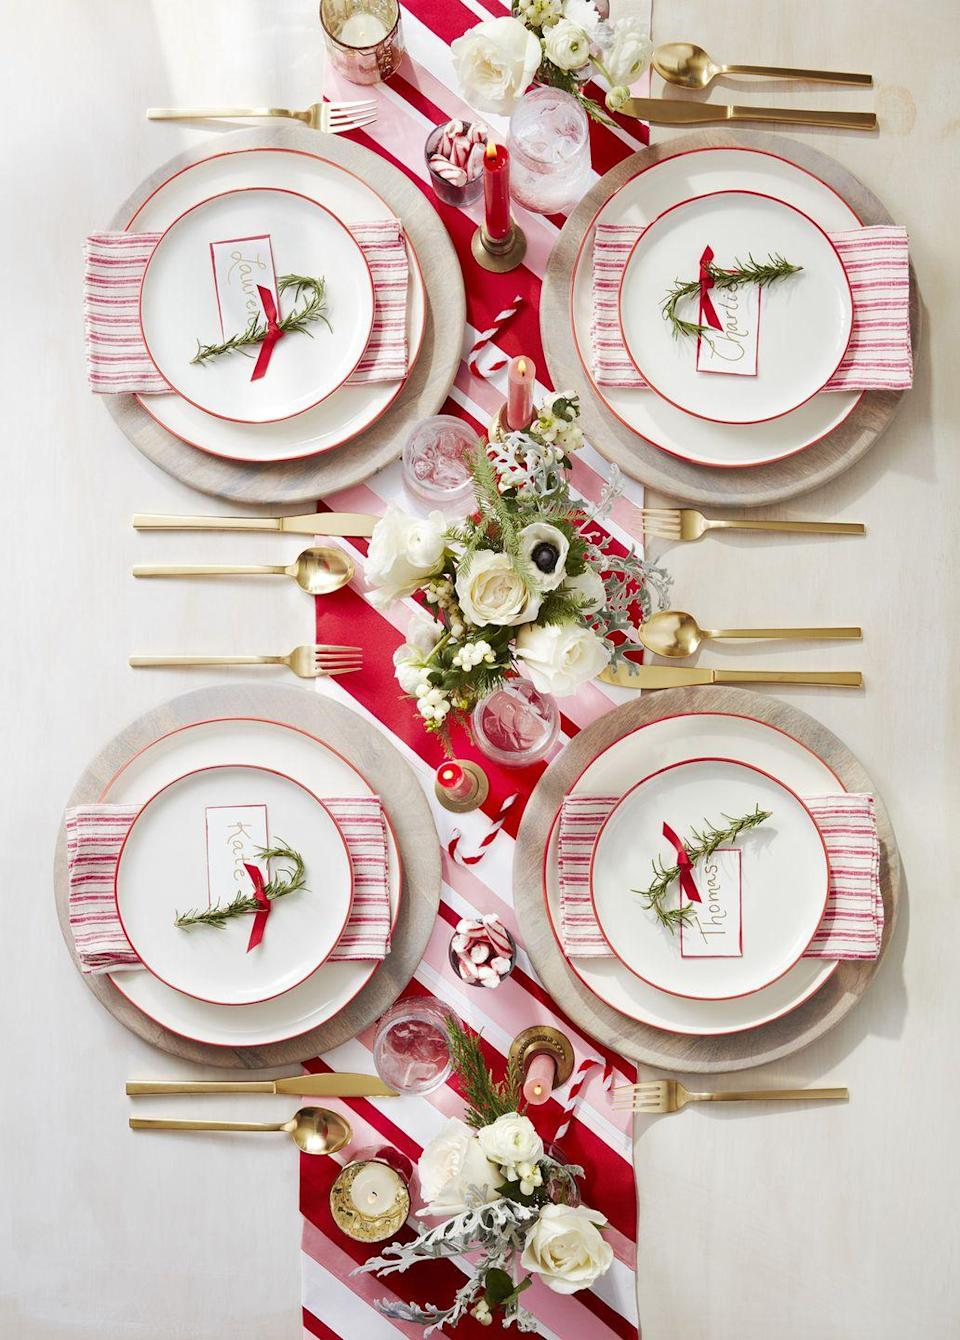 """<p>A candy cane-inspired display makes for the sweetest setup. To make the place cards, bend 7-inch-long pieces of <a href=""""https://www.amazon.com/BENECREAT-18-Gauge-Tarnish-Resistant-33-Feet/dp/B077ZPRP1Q?tag=syn-yahoo-20&ascsubtag=%5Bartid%7C10050.g.644%5Bsrc%7Cyahoo-us"""" rel=""""nofollow noopener"""" target=""""_blank"""" data-ylk=""""slk:18-gauge gold wire"""" class=""""link rapid-noclick-resp"""">18-gauge gold wire</a> into a candy cane shape. Attach lengths of rosemary with fishing wire. Cut card stock to size and use a <a href=""""https://www.amazon.com/Pentel-Touch-Brush-Stroke-SES15C-B/dp/B0081FYWXW?tag=syn-yahoo-20&ascsubtag=%5Bartid%7C10050.g.644%5Bsrc%7Cyahoo-us"""" rel=""""nofollow noopener"""" target=""""_blank"""" data-ylk=""""slk:red brush-tip pen"""" class=""""link rapid-noclick-resp"""">red brush-tip pen</a> to stain edges, then write names with a <a href=""""https://www.amazon.com/Pentel-Sunburst-Metallic-Permanent-K908BP2X/dp/B003XQFW9C?tag=syn-yahoo-20&ascsubtag=%5Bartid%7C10050.g.644%5Bsrc%7Cyahoo-us"""" rel=""""nofollow noopener"""" target=""""_blank"""" data-ylk=""""slk:gold pen"""" class=""""link rapid-noclick-resp"""">gold pen</a>. Punch a hole in one corner, thread <a href=""""https://www.amazon.com/Topenca-Supplies-Inches-Double-Ribbon/dp/B01ENR4L4Q?tag=syn-yahoo-20&ascsubtag=%5Bartid%7C10050.g.644%5Bsrc%7Cyahoo-us"""" rel=""""nofollow noopener"""" target=""""_blank"""" data-ylk=""""slk:thin red ribbon"""" class=""""link rapid-noclick-resp"""">thin red ribbon</a> through hole, and tie around """"candy cane."""" To make the ribbon runner, secure differing widths of <a href=""""https://www.amazon.com/Creative-Ideas-Grosgrain-Ribbon-50-Yard/dp/B005G01IOG?tag=syn-yahoo-20&ascsubtag=%5Bartid%7C10050.g.644%5Bsrc%7Cyahoo-us"""" rel=""""nofollow noopener"""" target=""""_blank"""" data-ylk=""""slk:red"""" class=""""link rapid-noclick-resp"""">red</a>, <a href=""""https://www.amazon.com/Creative-Ideas-Grosgrain-Ribbon-50-Yard/dp/B005E2X2OA?tag=syn-yahoo-20&ascsubtag=%5Bartid%7C10050.g.644%5Bsrc%7Cyahoo-us"""" rel=""""nofollow noopener"""" target=""""_blank"""" data-ylk=""""slk:white"""" class=""""link rapid-noclick-resp"""">w"""